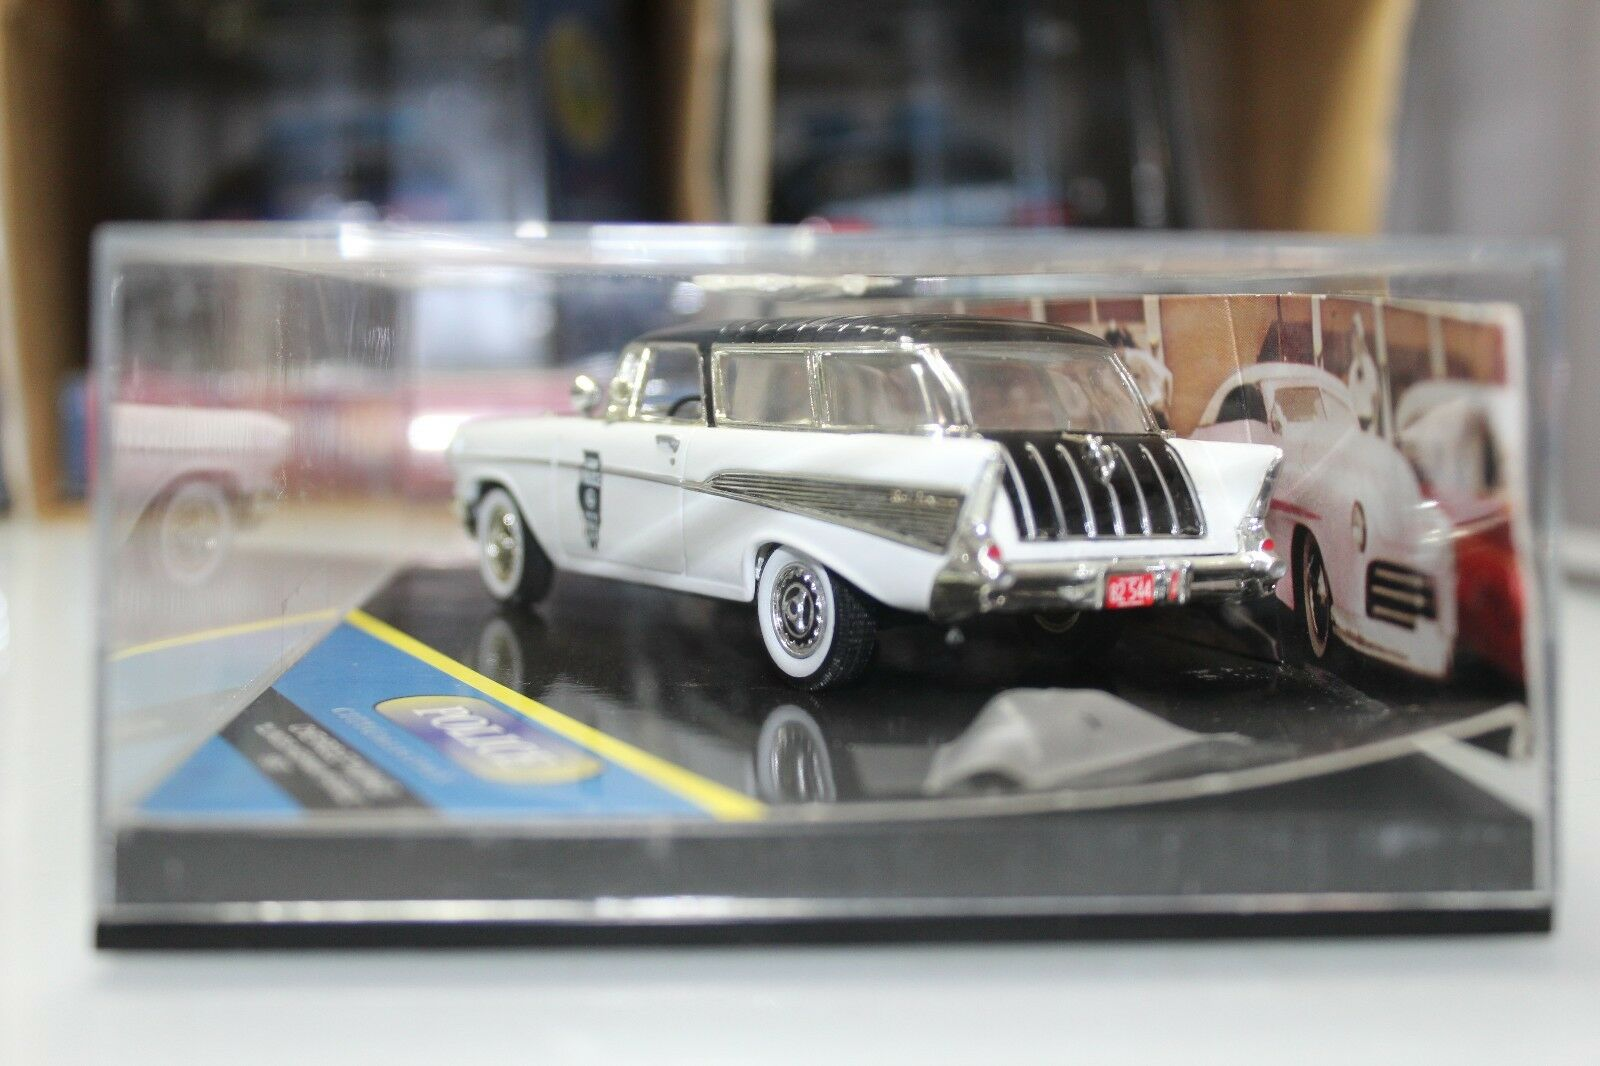 Vitesse 1 43 Scale Scale Scale City Collection Series 1957 CHEVROLET NOMAD ILLINOIS HIGHWAY 56c65e